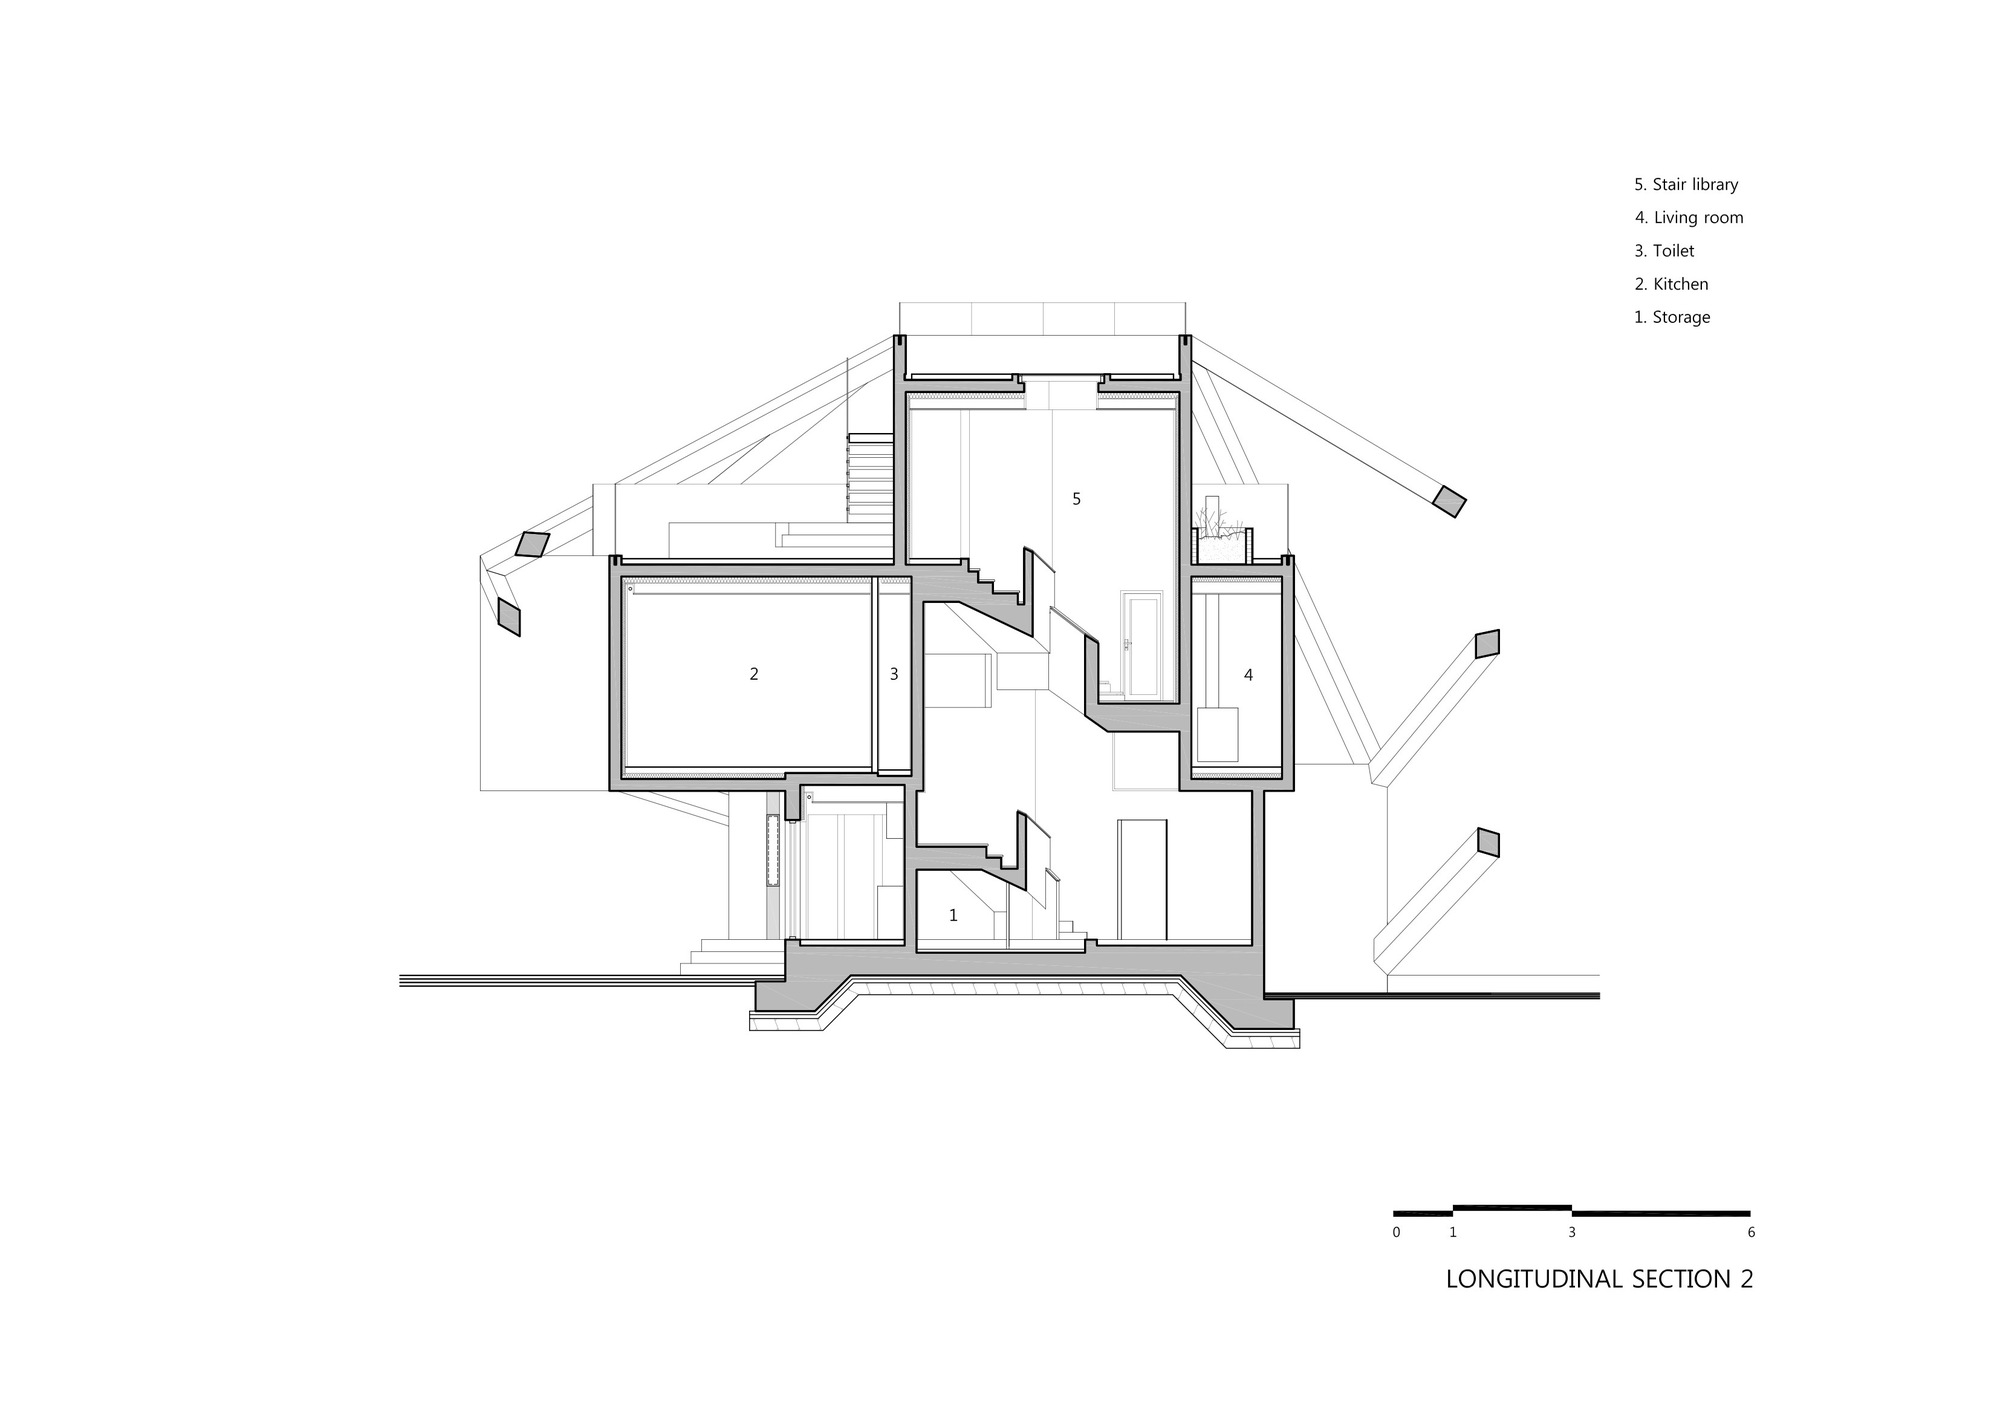 Simple House Diagram Electrical Wiring Diagrams Installation 1 Gallery Of Moon Hoon 53